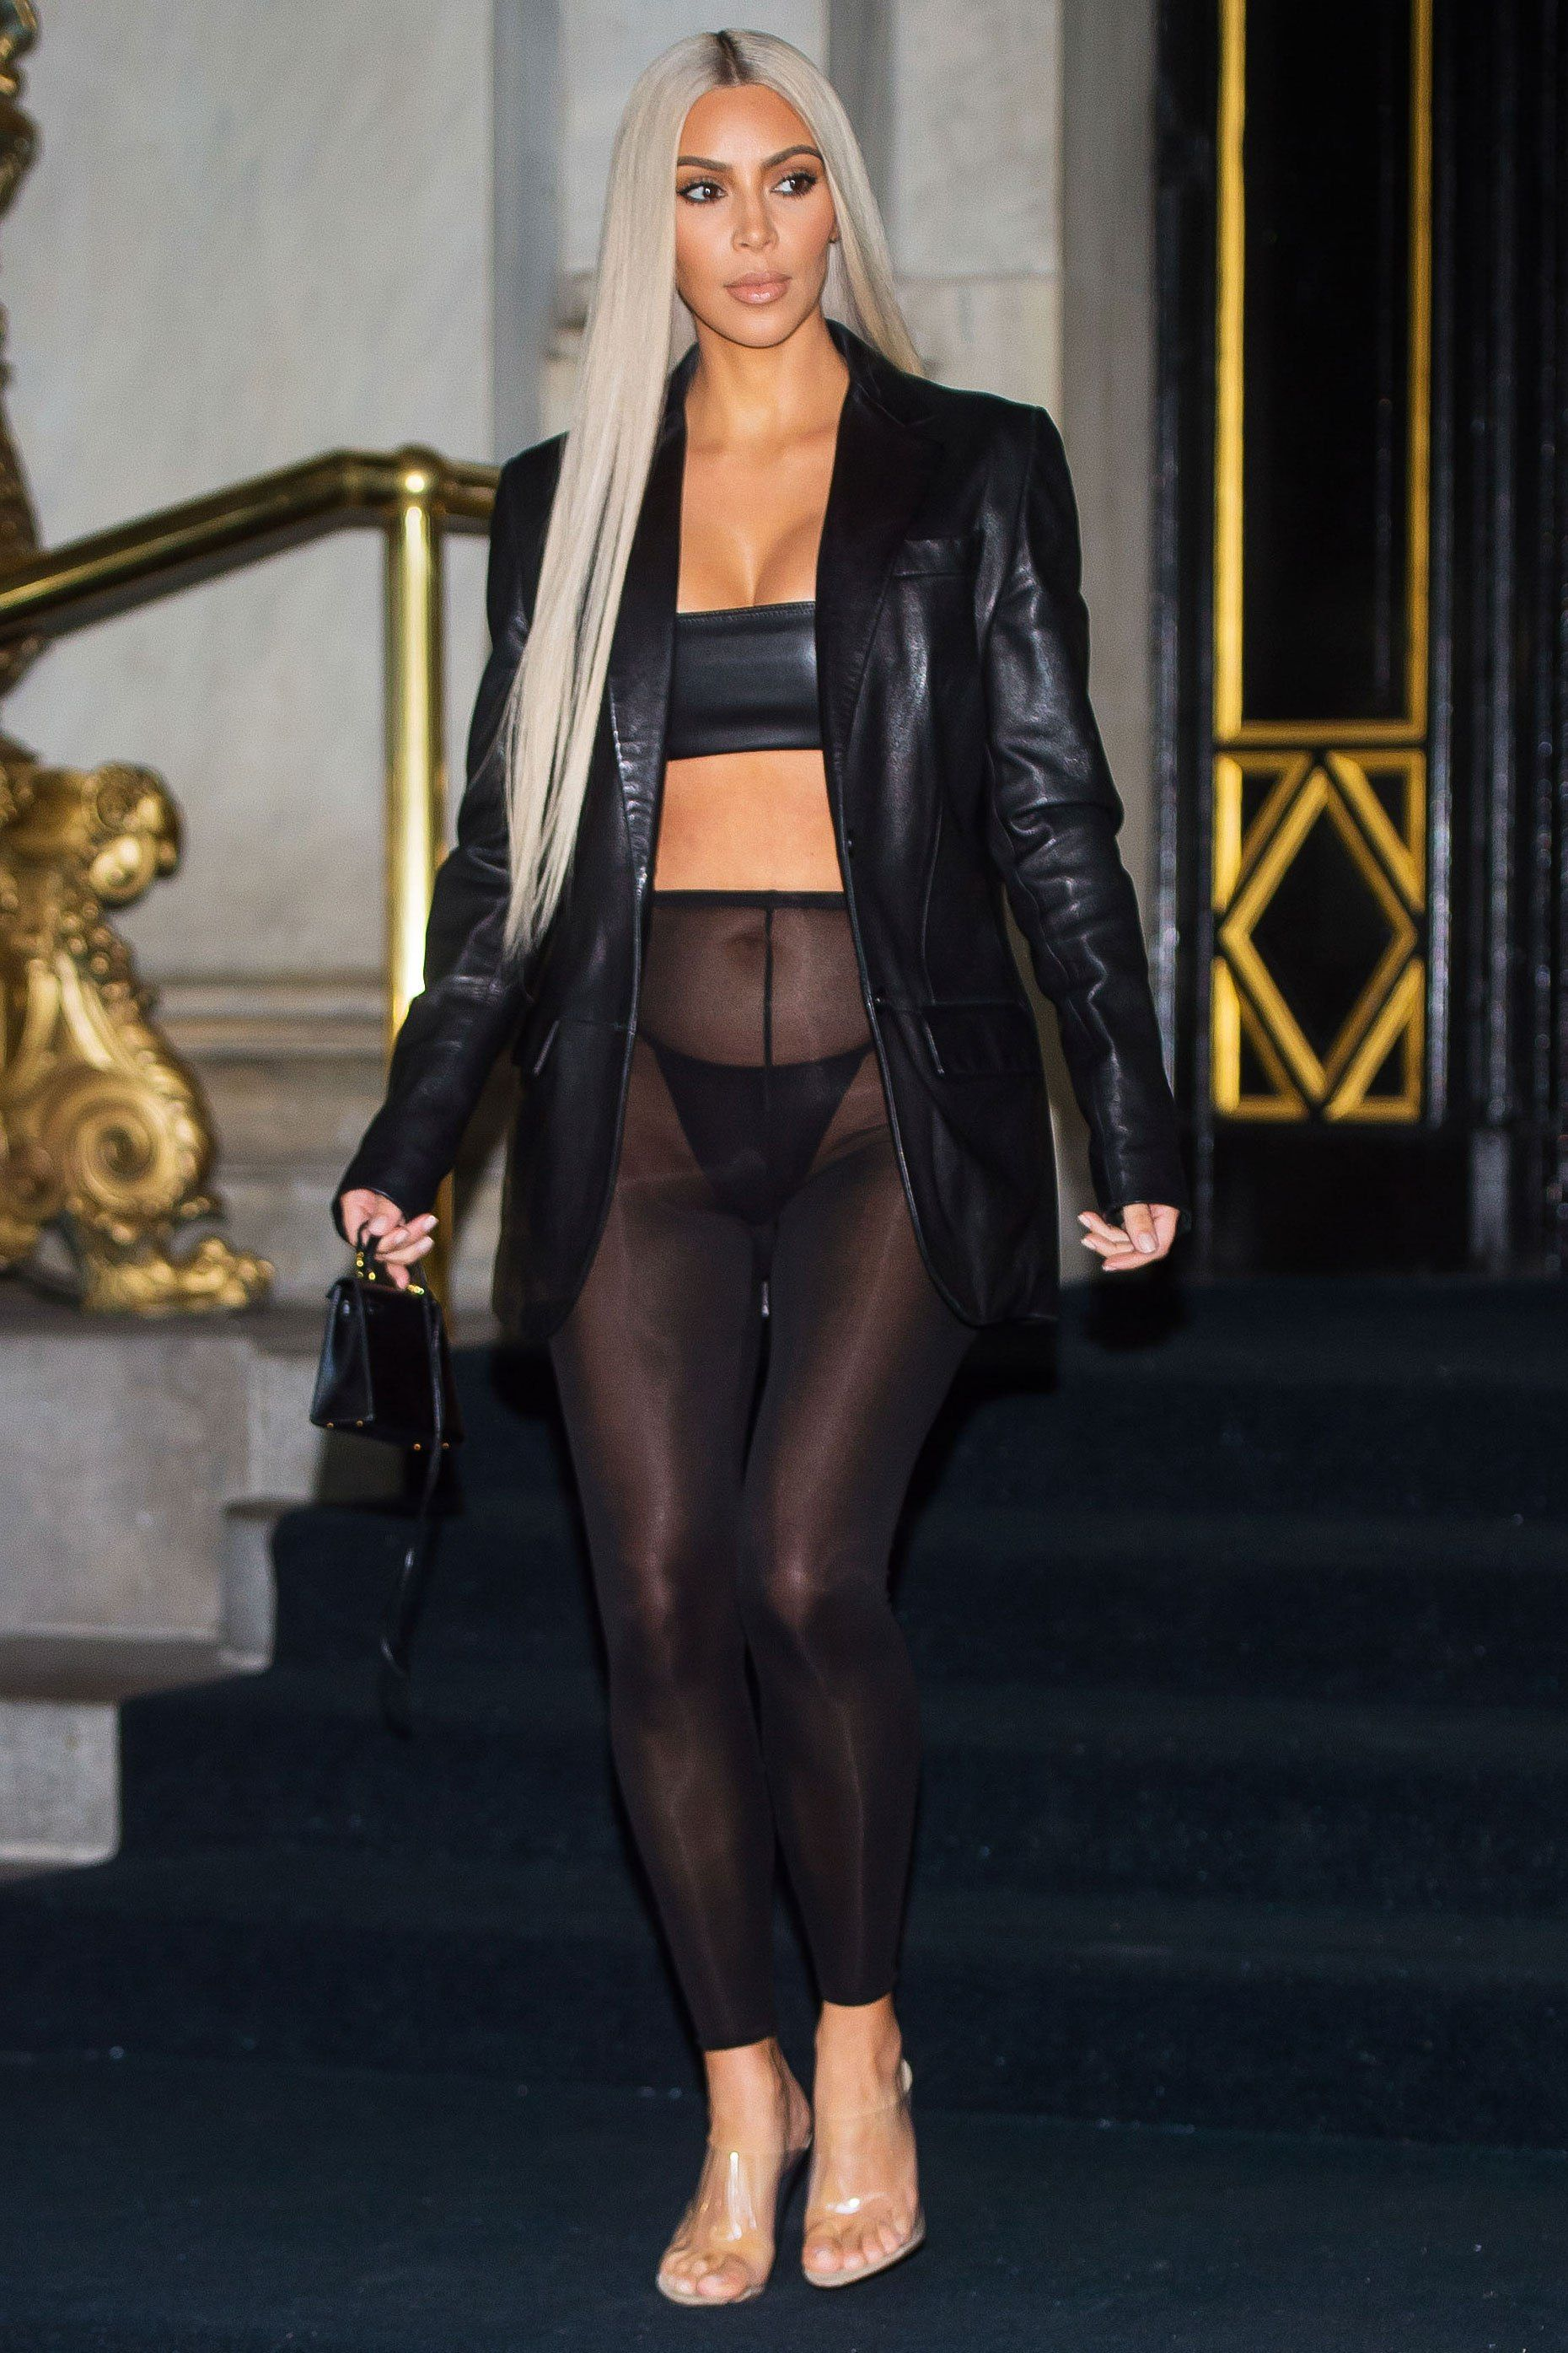 7fee43772a6 Kim Kardashian Wears See-Through Leggings in Her Most Outrageous ...